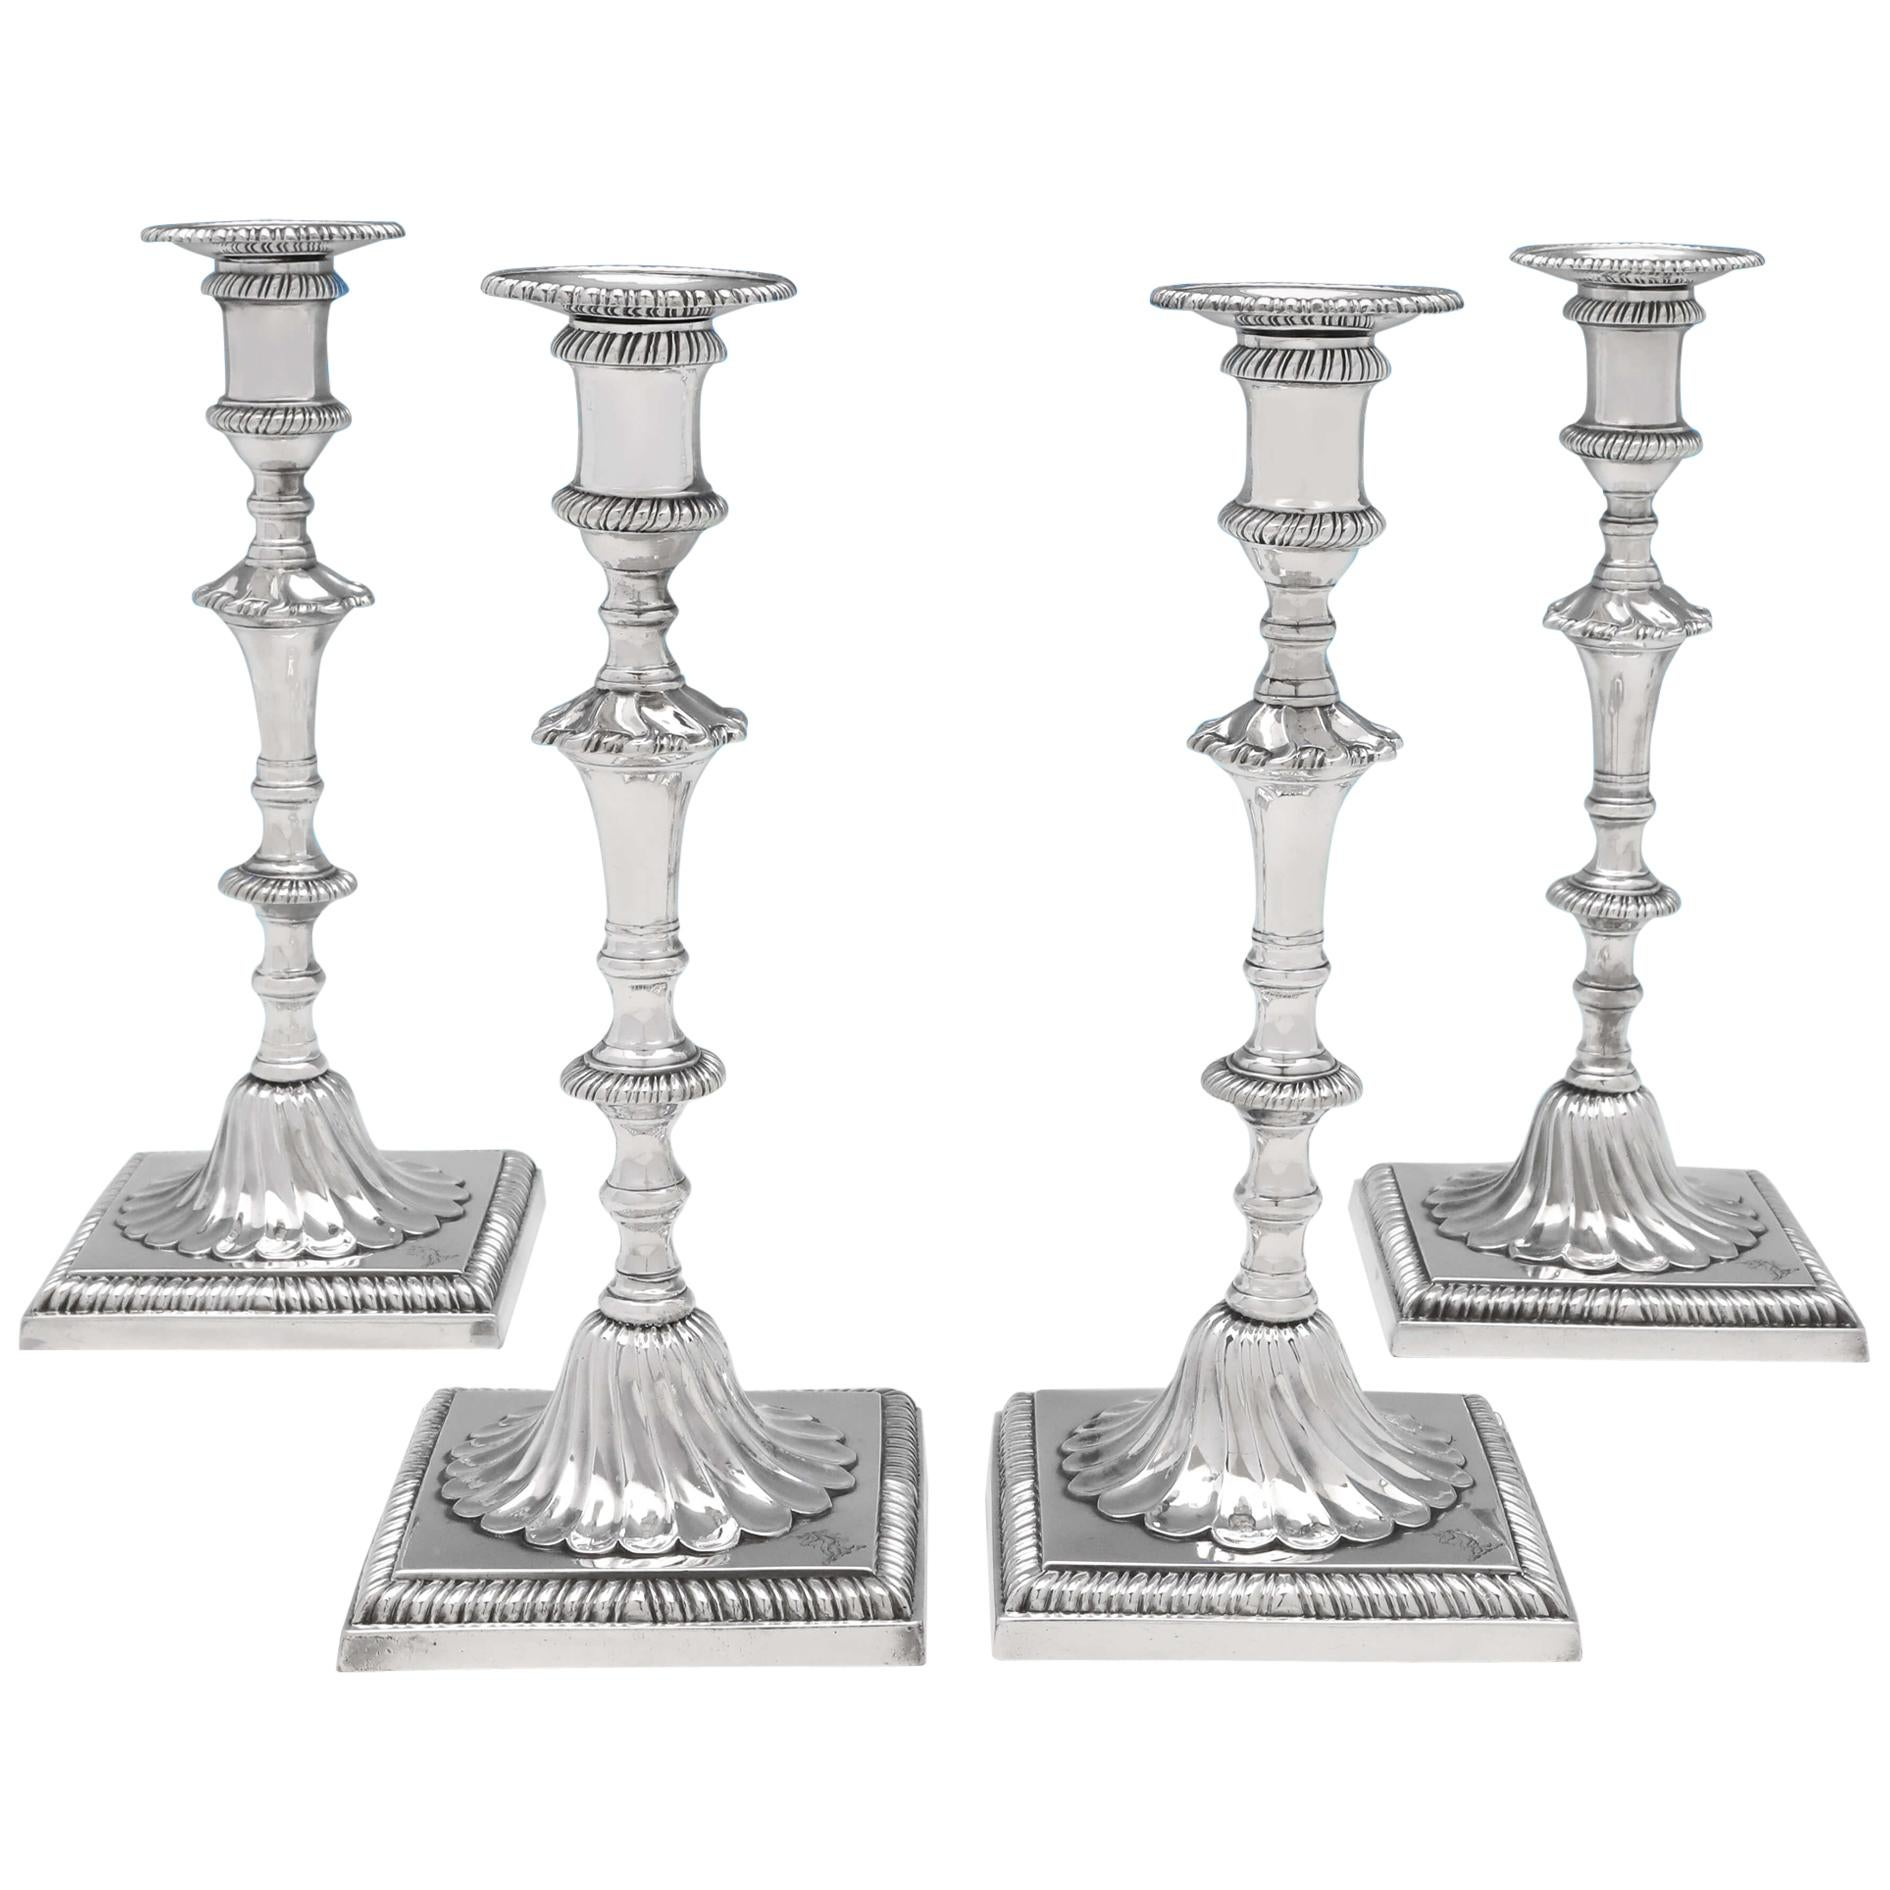 George III Antique Sterling Silver Set of Four Cast Candlesticks by John Cafe